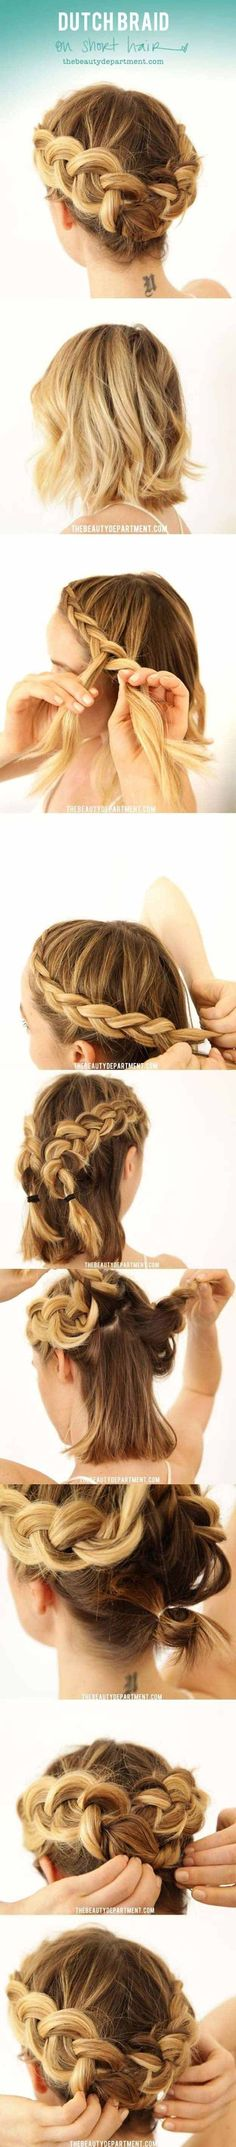 Festival Hair Tutorials - Summer Braid 4 - Short Quick and Easy Tutorial Guides and How Tos for Braids, Curly Hair, Long Hair, Medium Hair, and that Perfect Updo - Great Ideas for That Summer Music Edm Show, Whether It's A New Hair Color or Some Awesome Accessories and Flowers - Boho and Bohemian Styles with Glitter and a Headband - thegoddess.com/festival-hair-tutorials